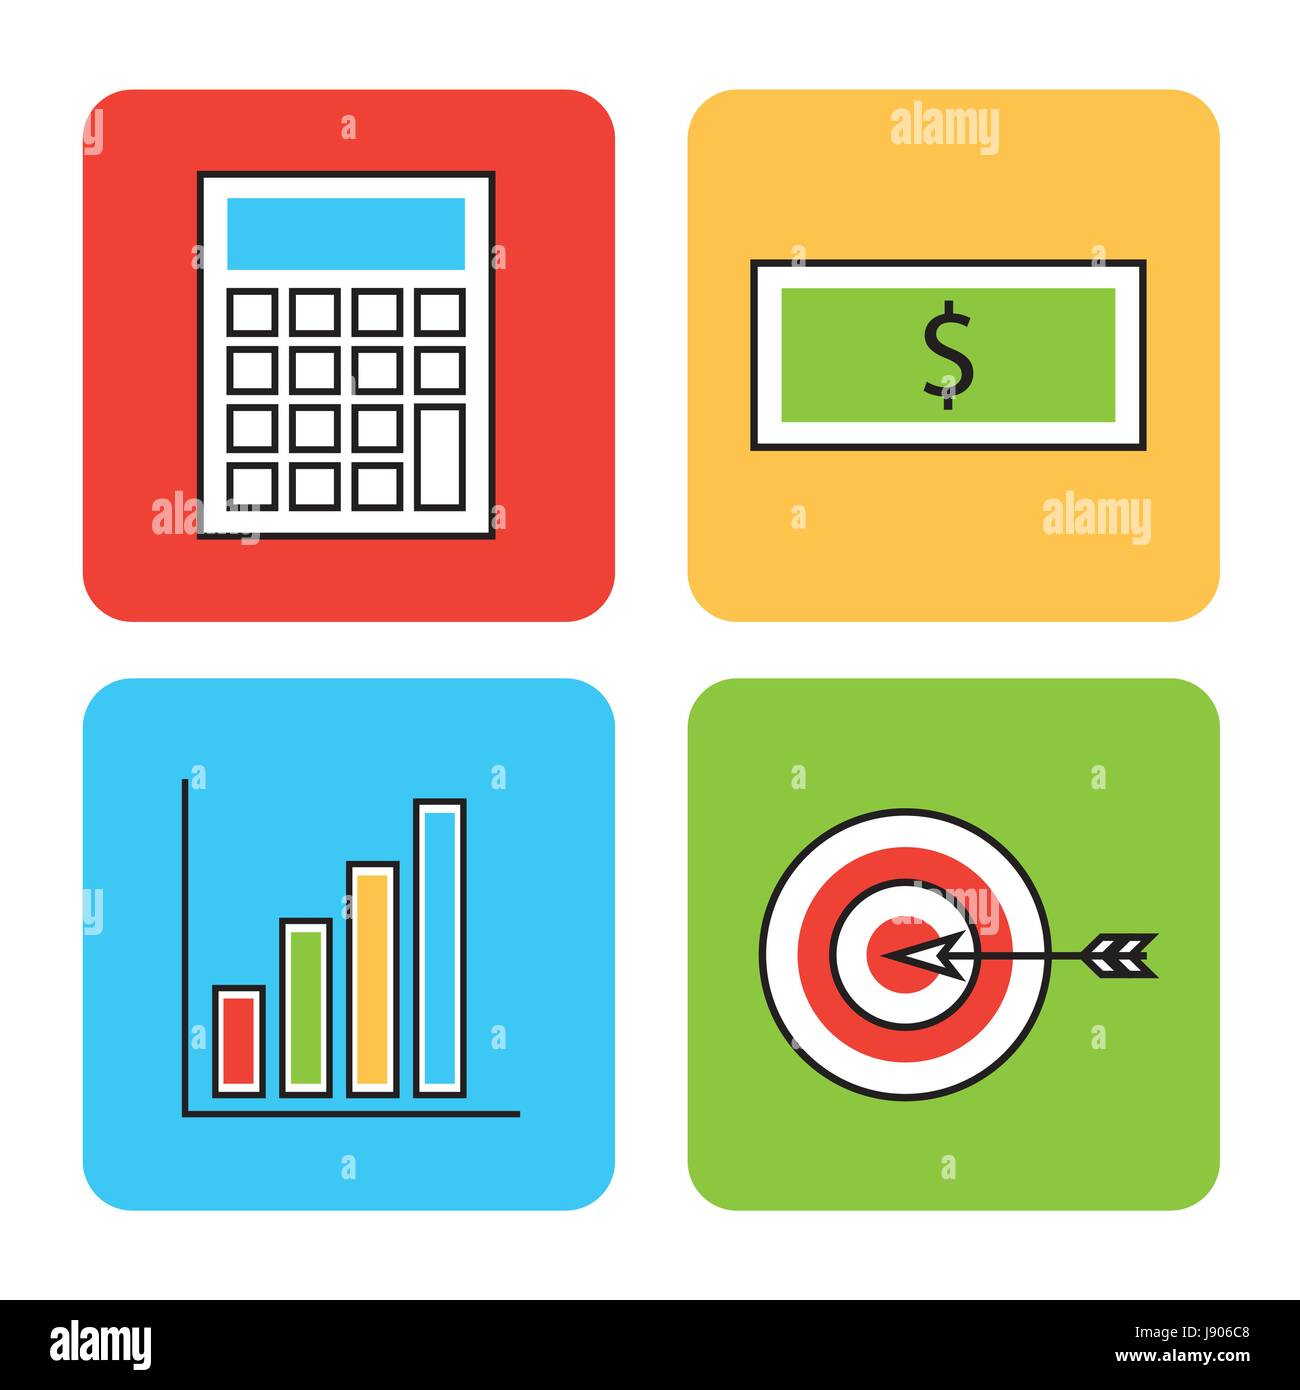 icons set analytic and investments - Stock Image